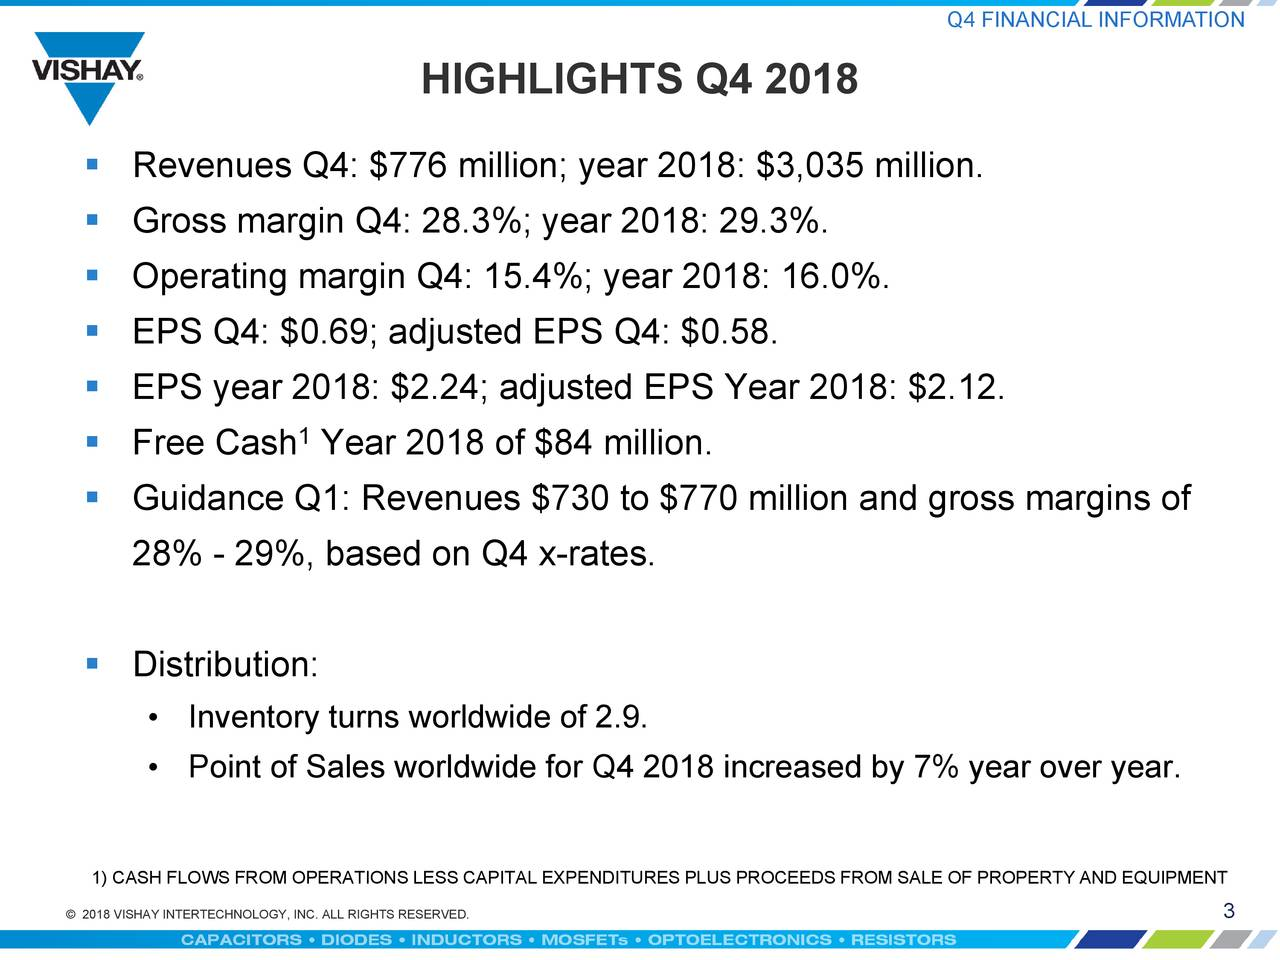 HIGHLIGHTS Q4 2018  Revenues Q4: $776 million; year 2018: $3,035 million.  Gross margin Q4: 28.3%; year 2018: 29.3%.  Operating margin Q4: 15.4%; year 2018: 16.0%.  EPS Q4: $0.69; adjusted EPS Q4: $0.58.  EPS year 2018: $2.24; adjusted EPS Year 2018: $2.12. 1  Free Cash Year 2018 of $84 million.  Guidance Q1: Revenues $730 to $770 million and gross margins of 28% - 29%, based on Q4 x-rates.  Distribution: • Inventory turns worldwide of 2.9. • Point of Sales worldwide for Q4 2018 increased by 7% year over year. 1) CASH FLOWS FROM OPERATIONS LESS CAPITAL EXPENDITURES PLUS PROCEEDS FROM SALE OF PROPERTY AND EQUIPMENT © 2018 VISHAY INTERTECHNOLOGY, INC. ALL RIGHTS RESERVED. 3